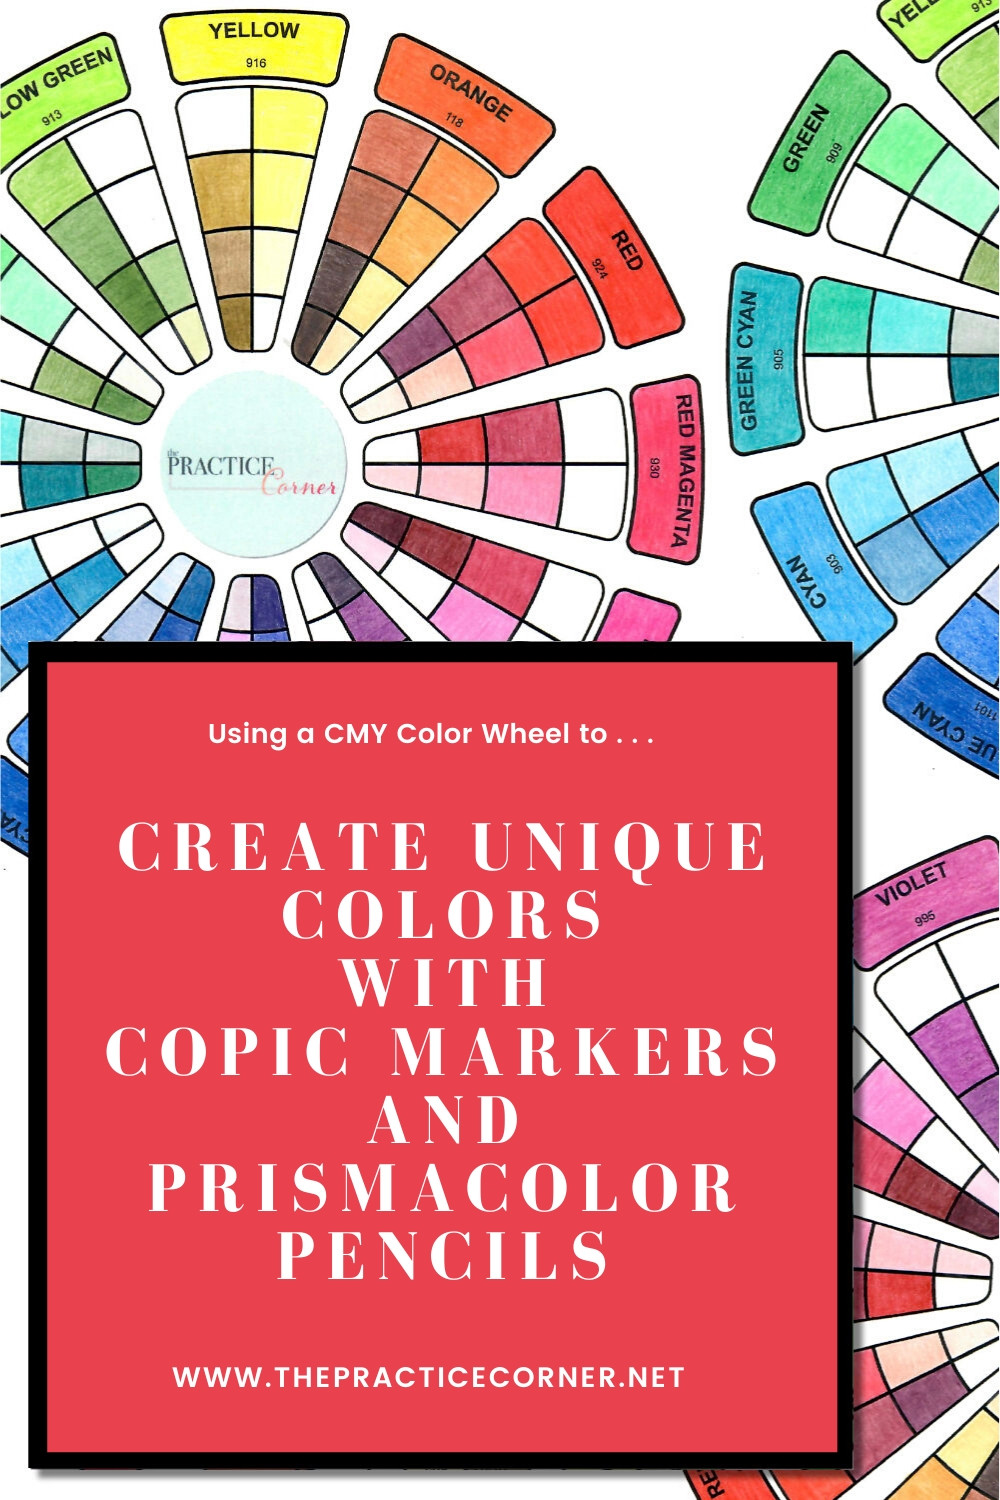 With practice you can develop the skill of creating deeper richer colors from your Copic markers and/or colored pencils. | How to improve your coloring | #coloredpencil #coloredpencilpractice #copicmarker #copicmarkerpractice  #copiccoloring #coloredpencilcoloring #thepracticecorner #coloringtechniques